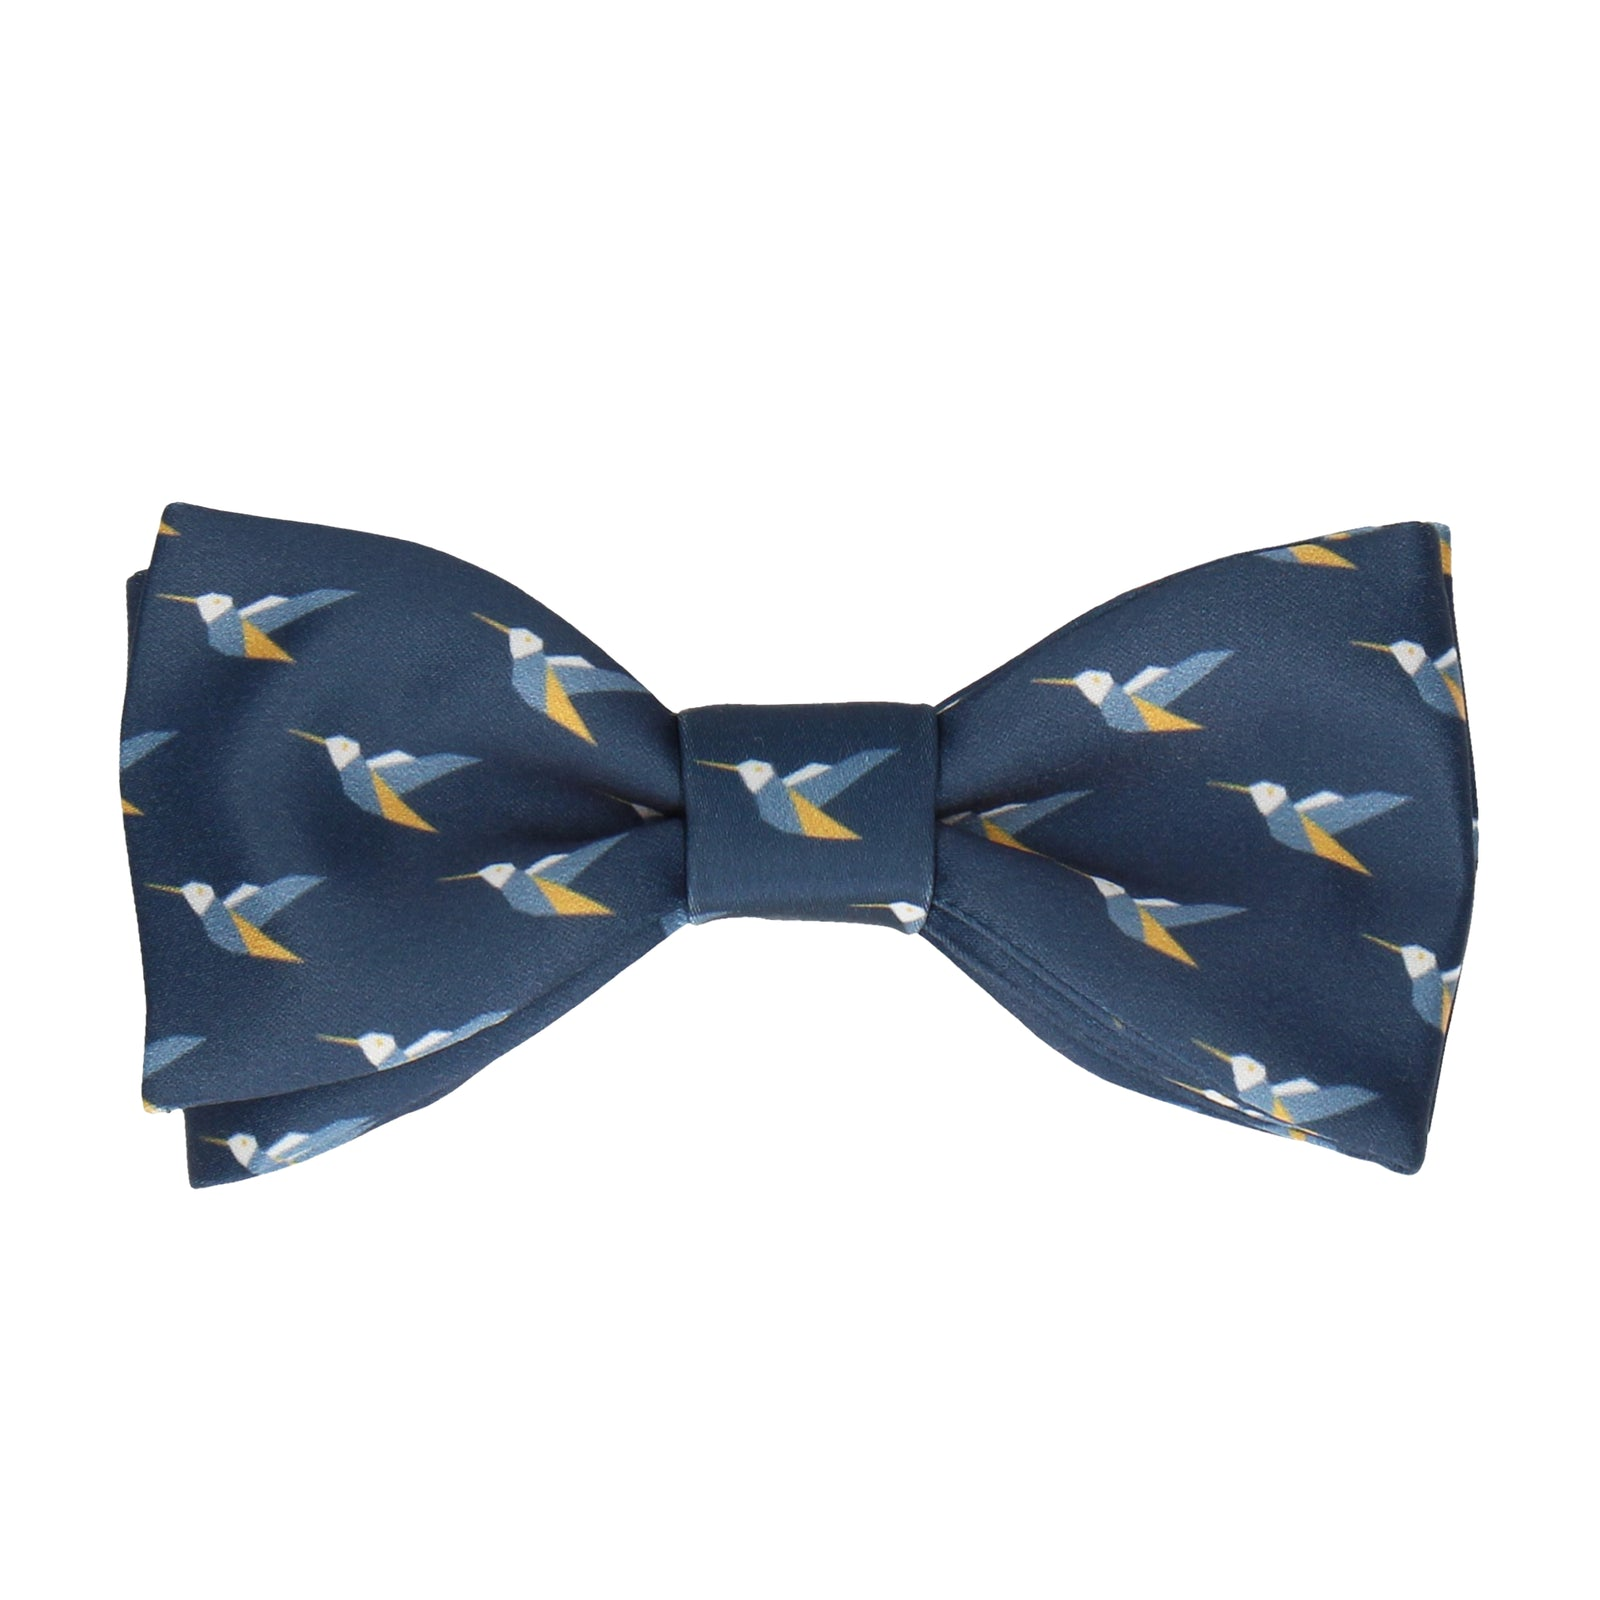 Origami Hummingbirds Navy Blue Bow Tie